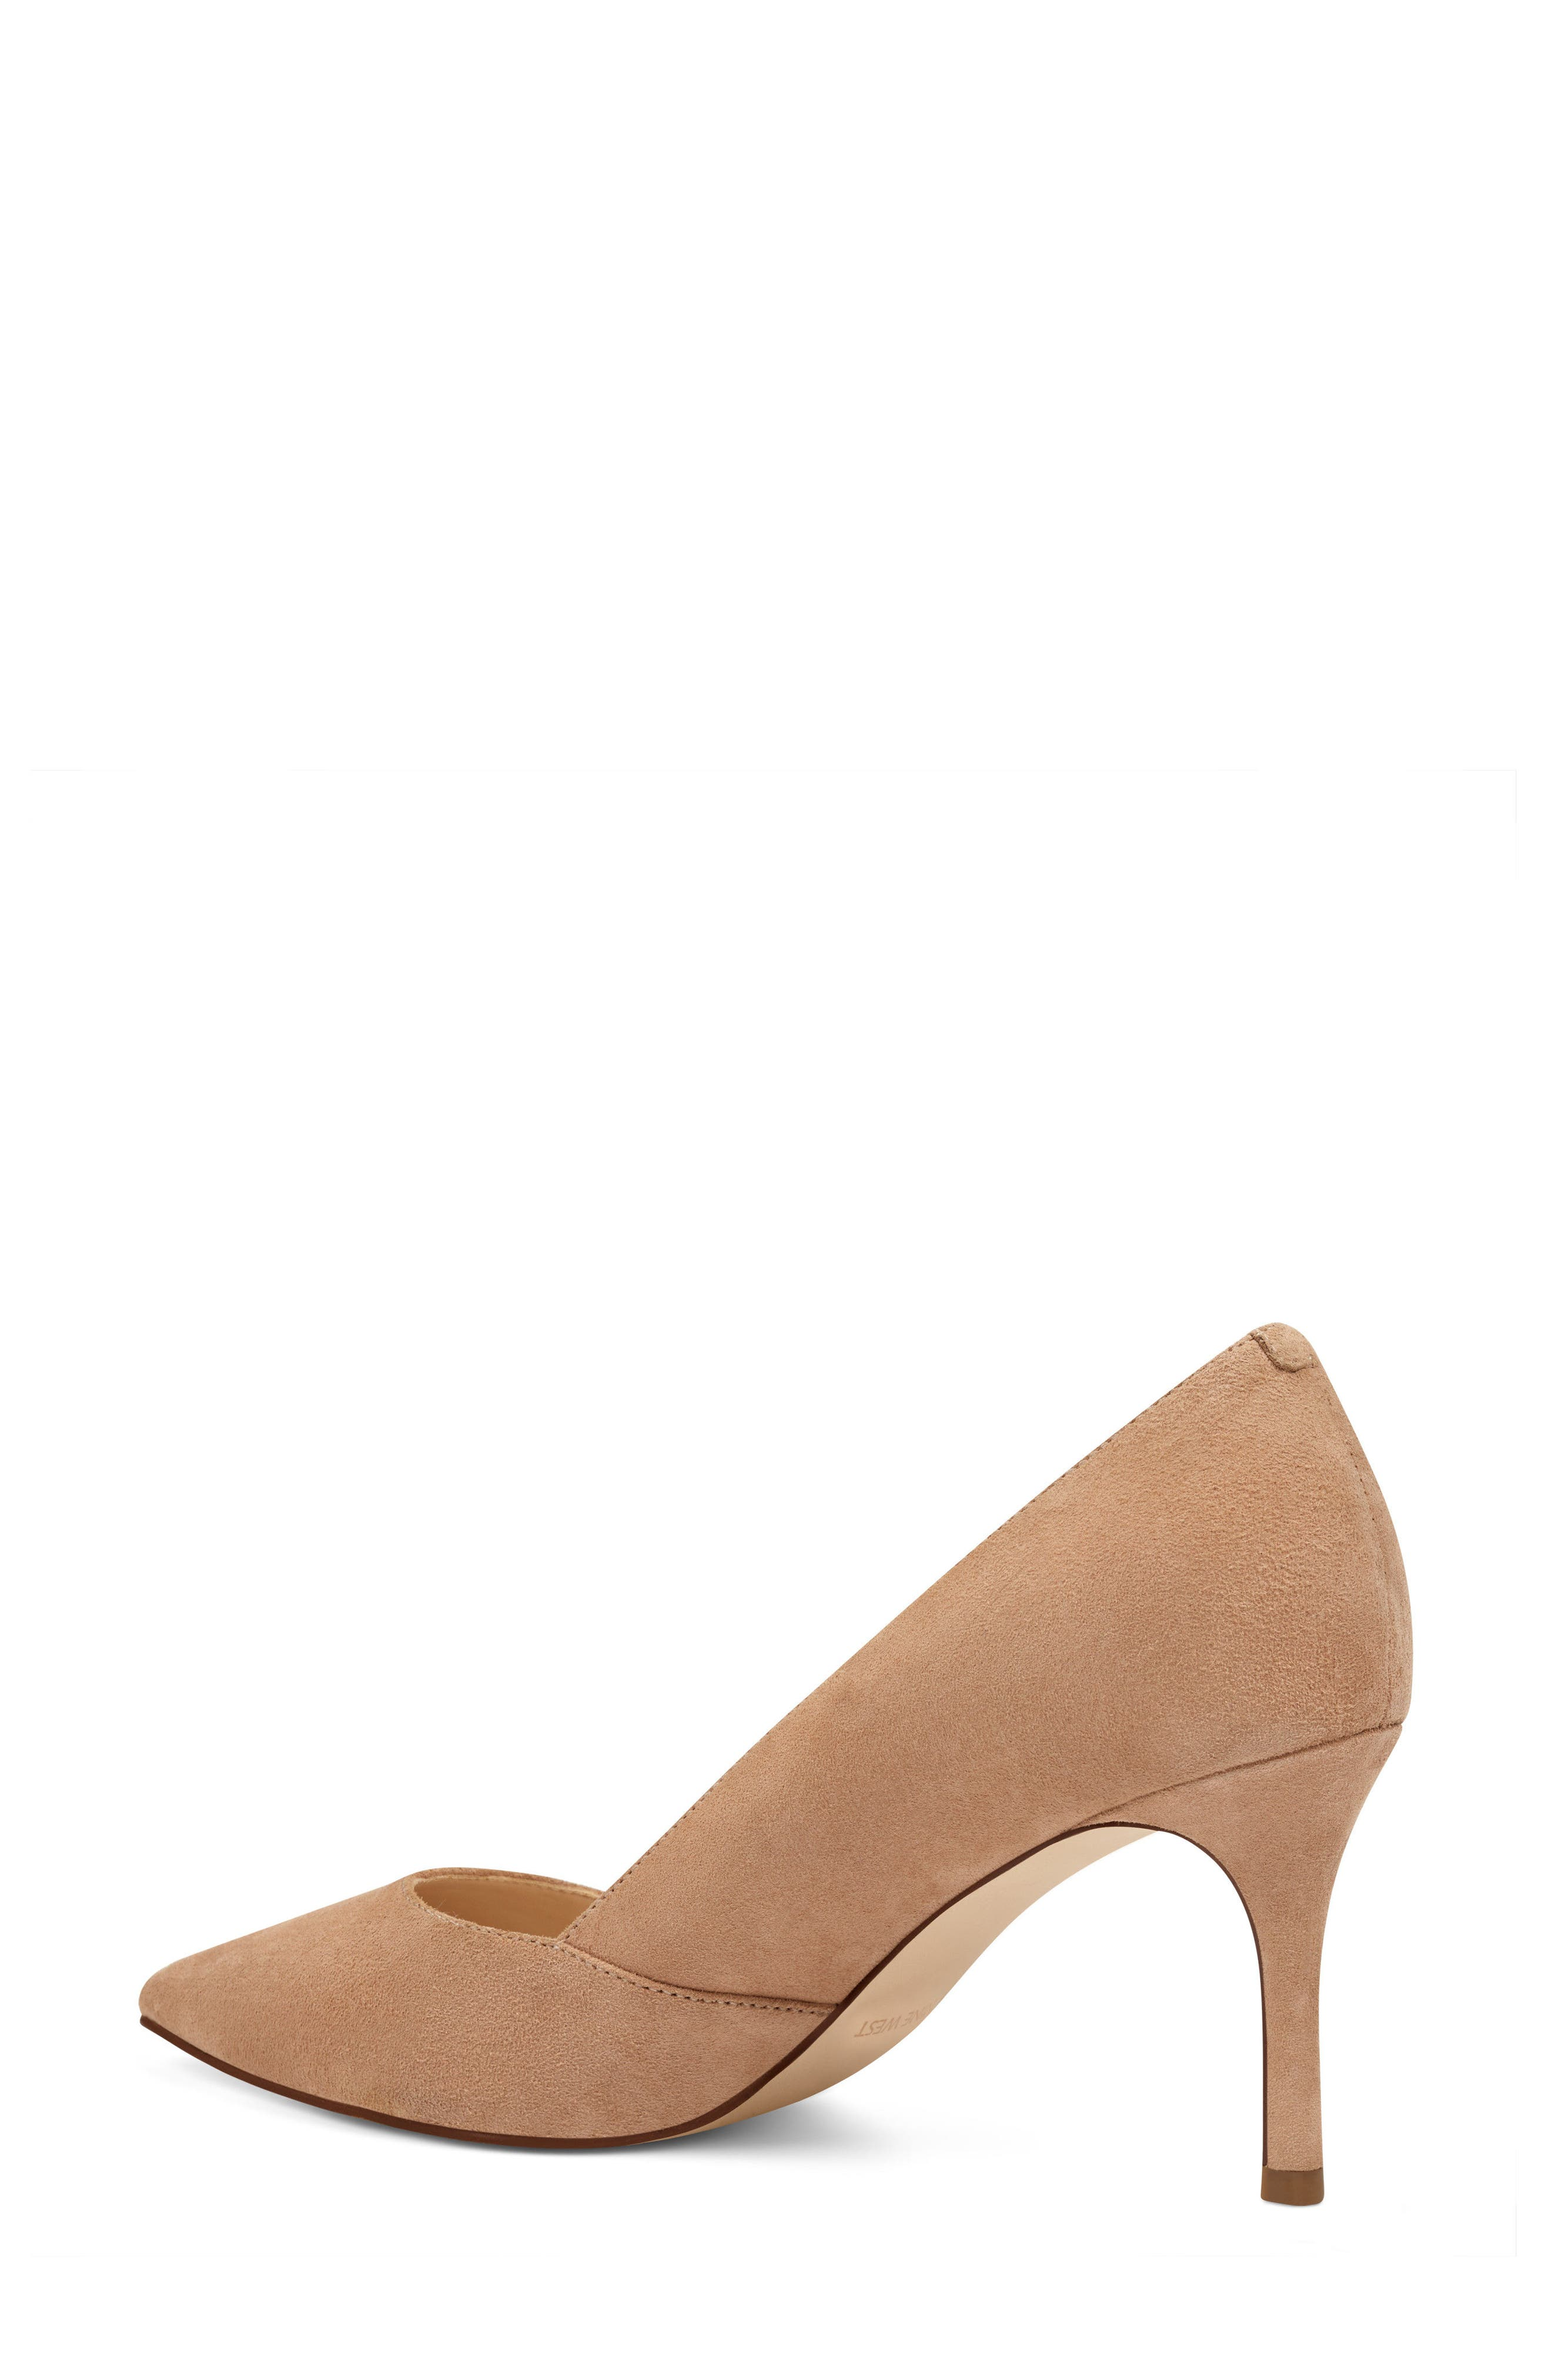 Mine Pointy Toe Pump,                             Alternate thumbnail 2, color,                             Light Natural Suede